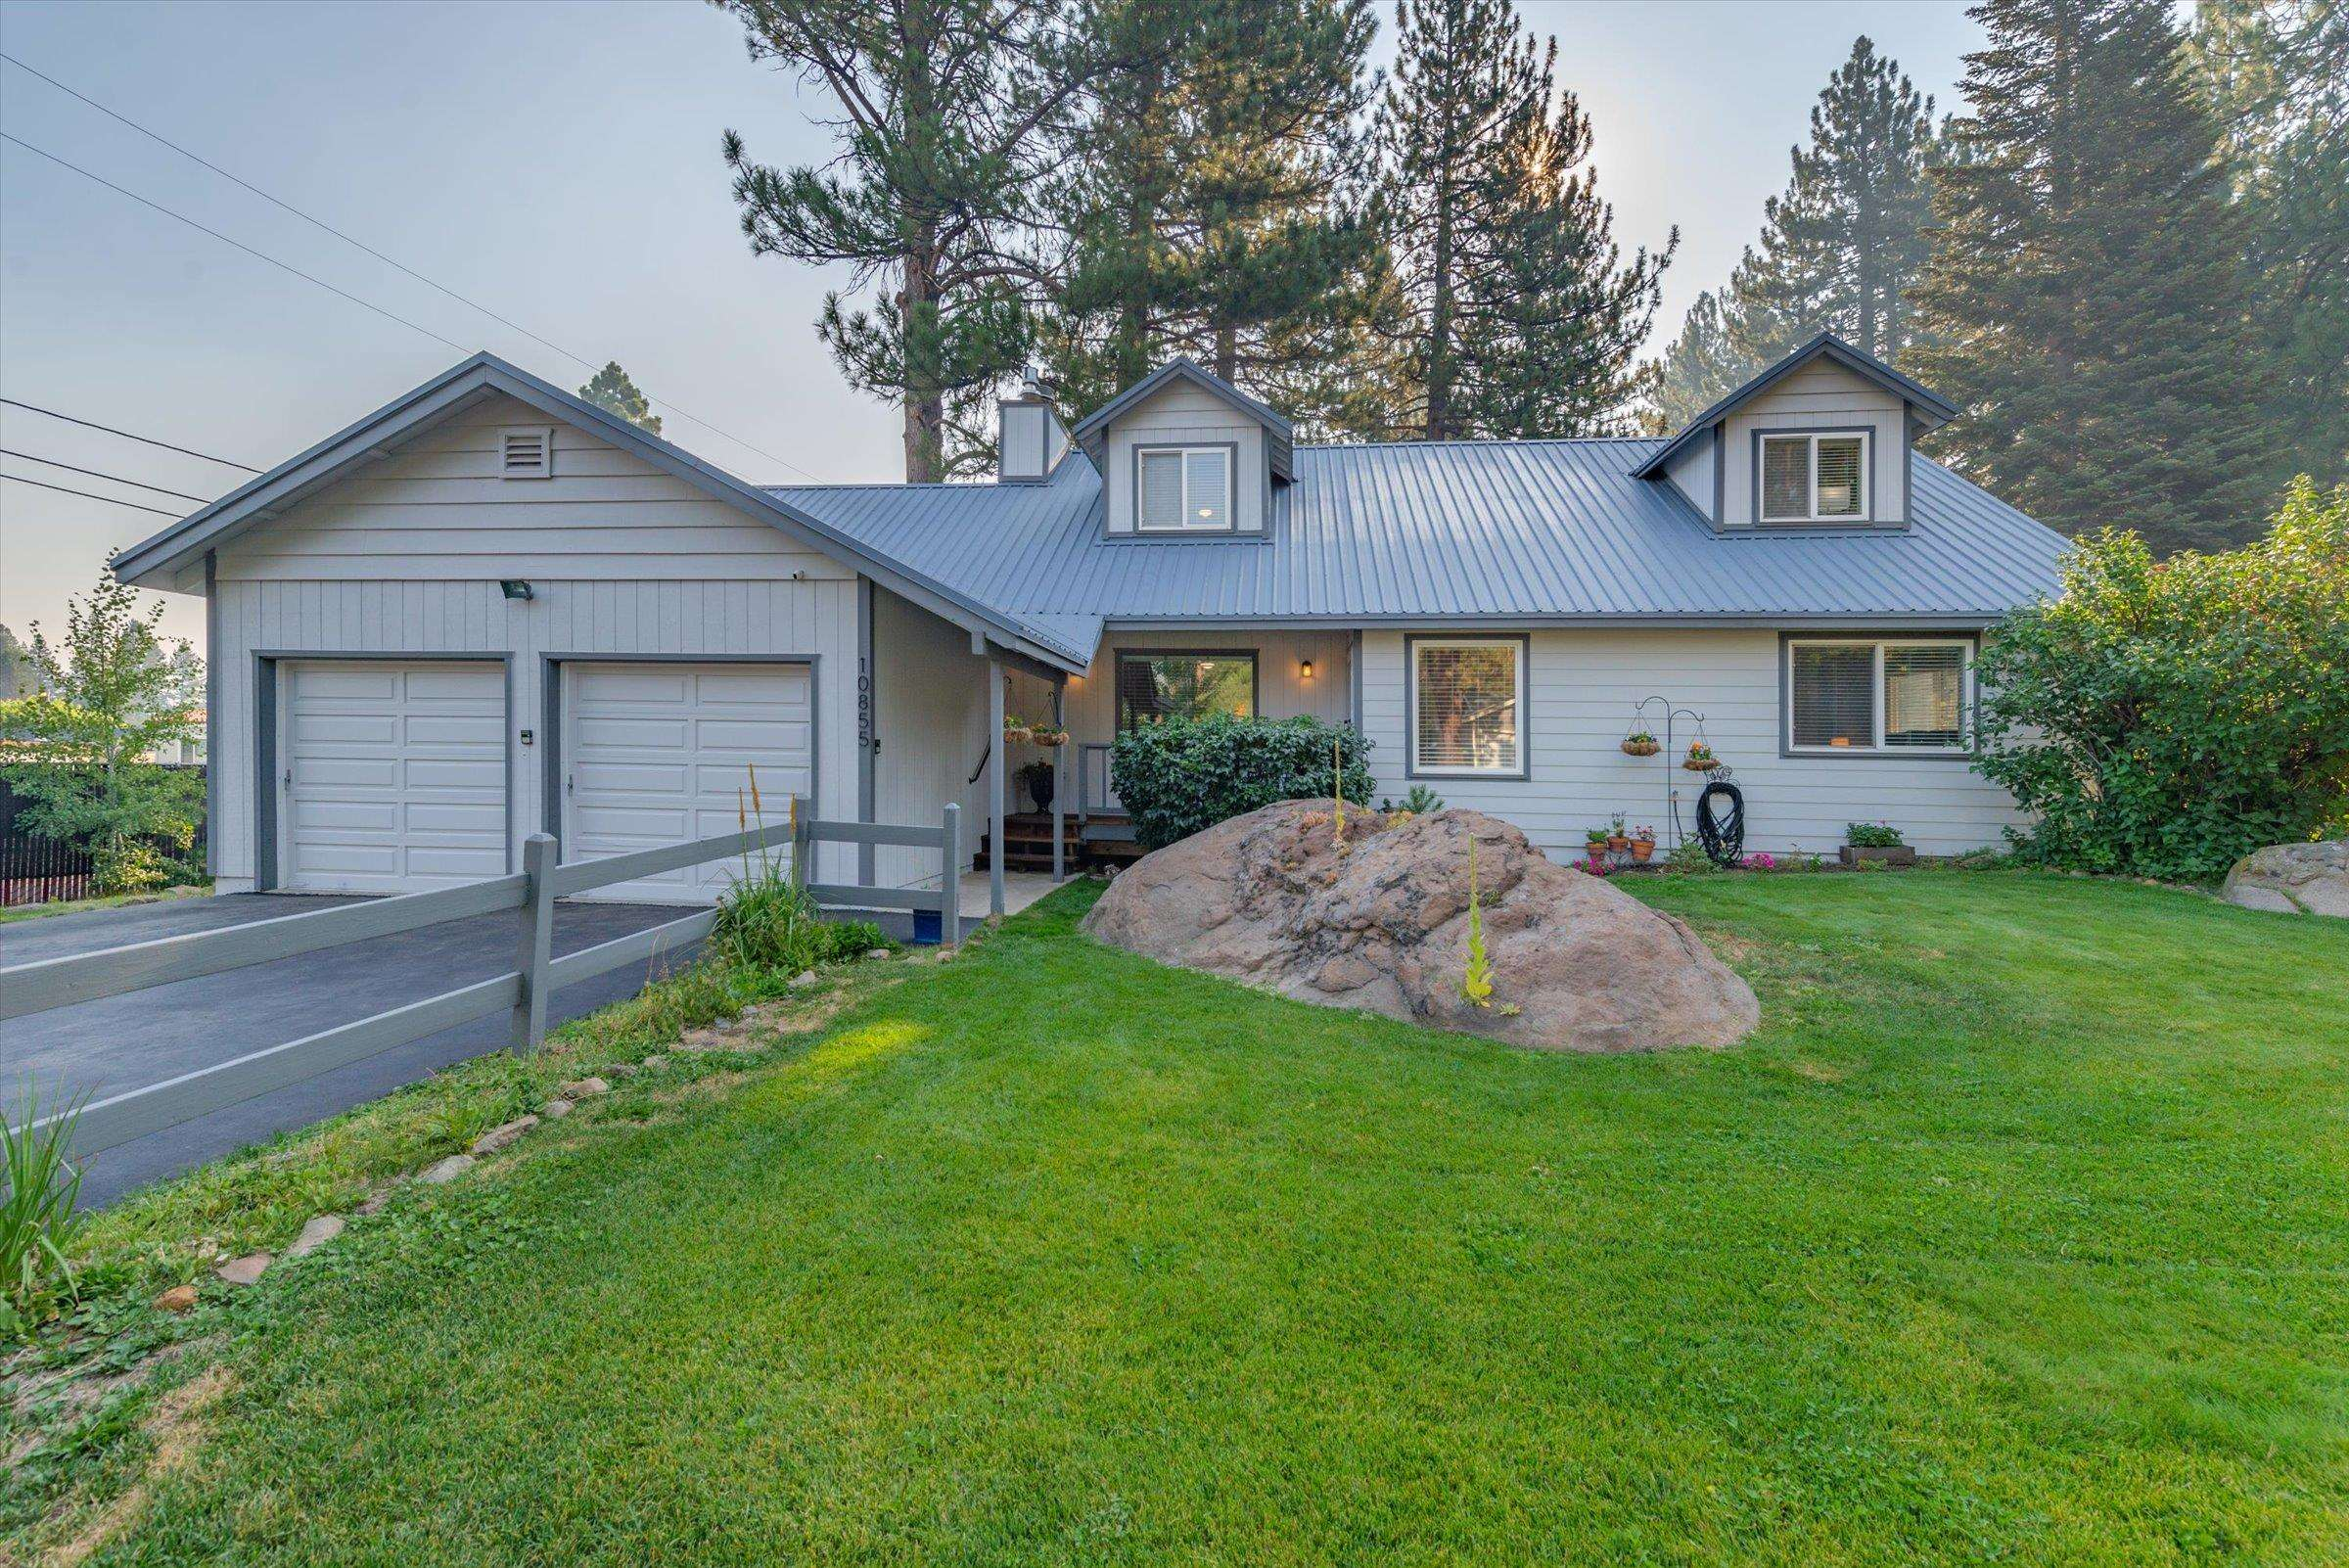 Image for 10855 Star Pine Road, Truckee, CA 96161